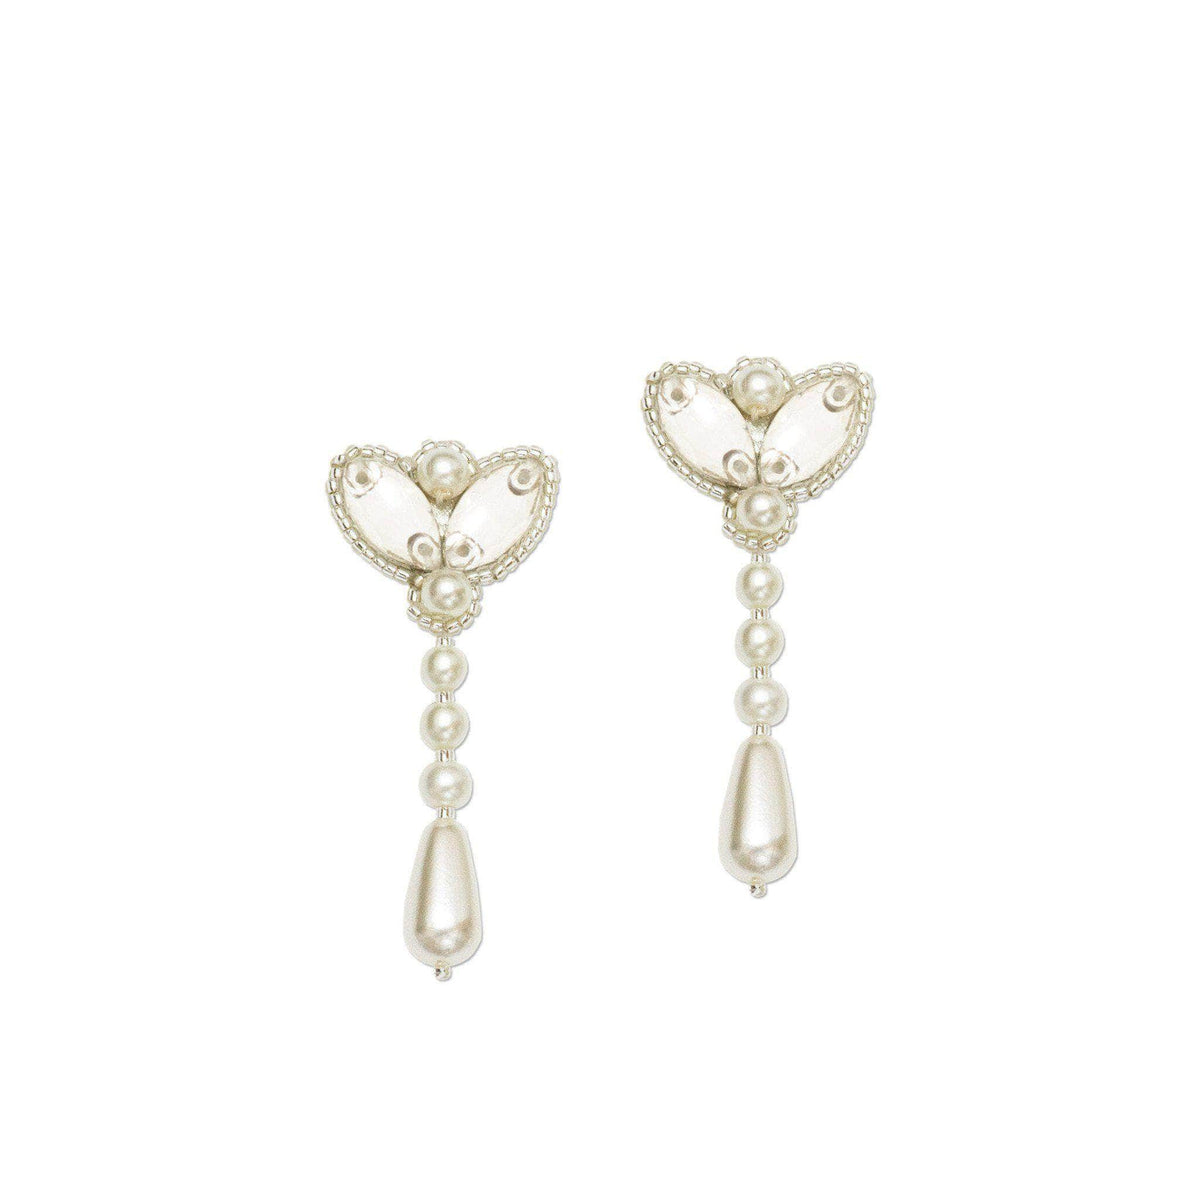 Wedding Earring Silver Wedding drop earrings pearl - 'Sienna'